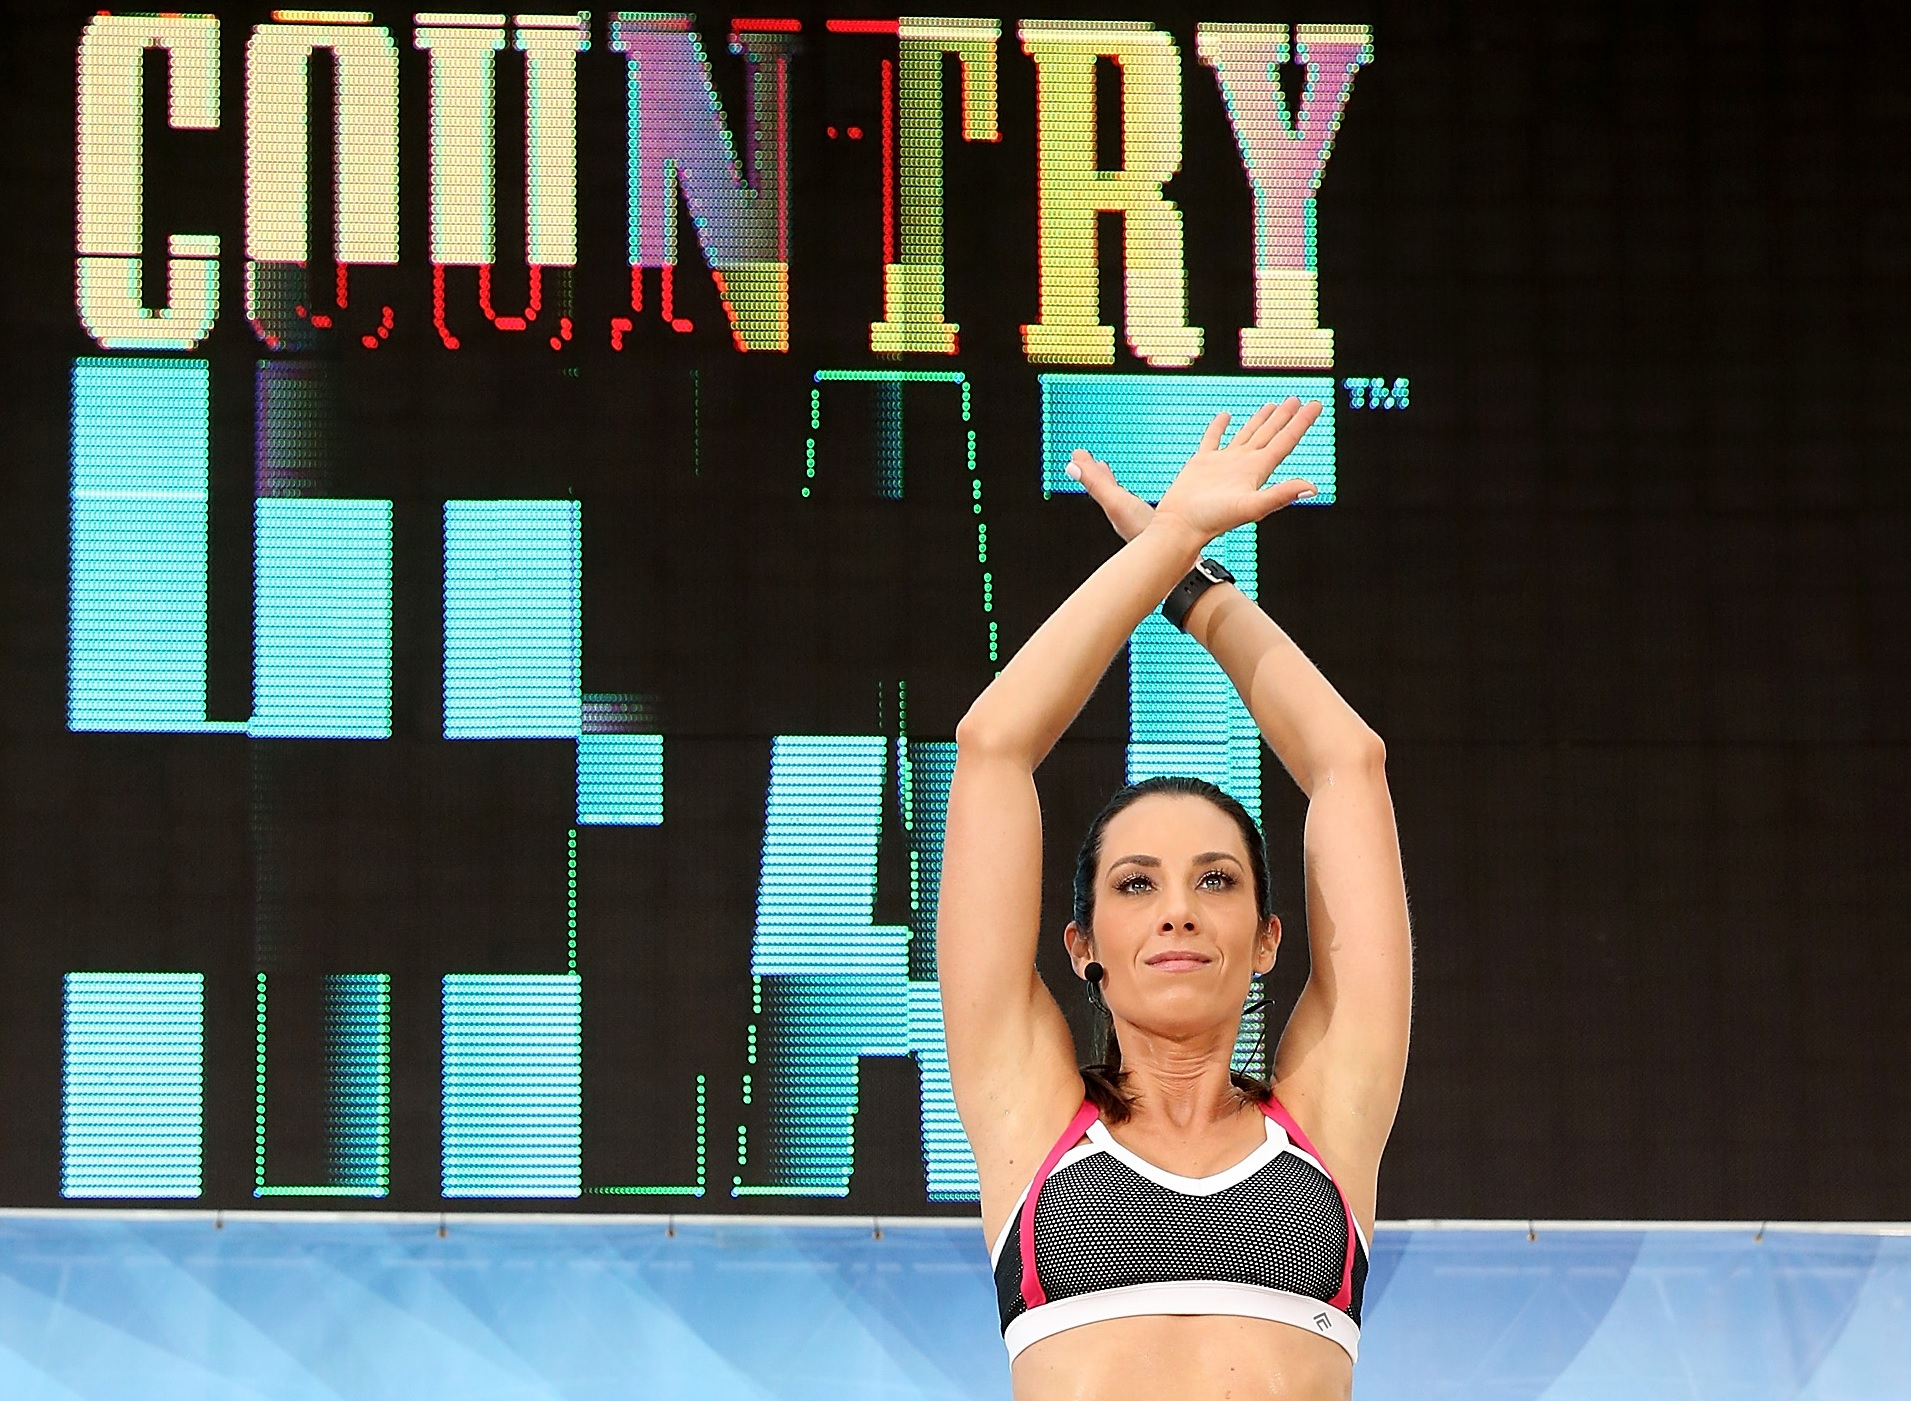 Autumn Calabrese Launches 'Country Heat' at Beachbody Coach Summit in Nashville